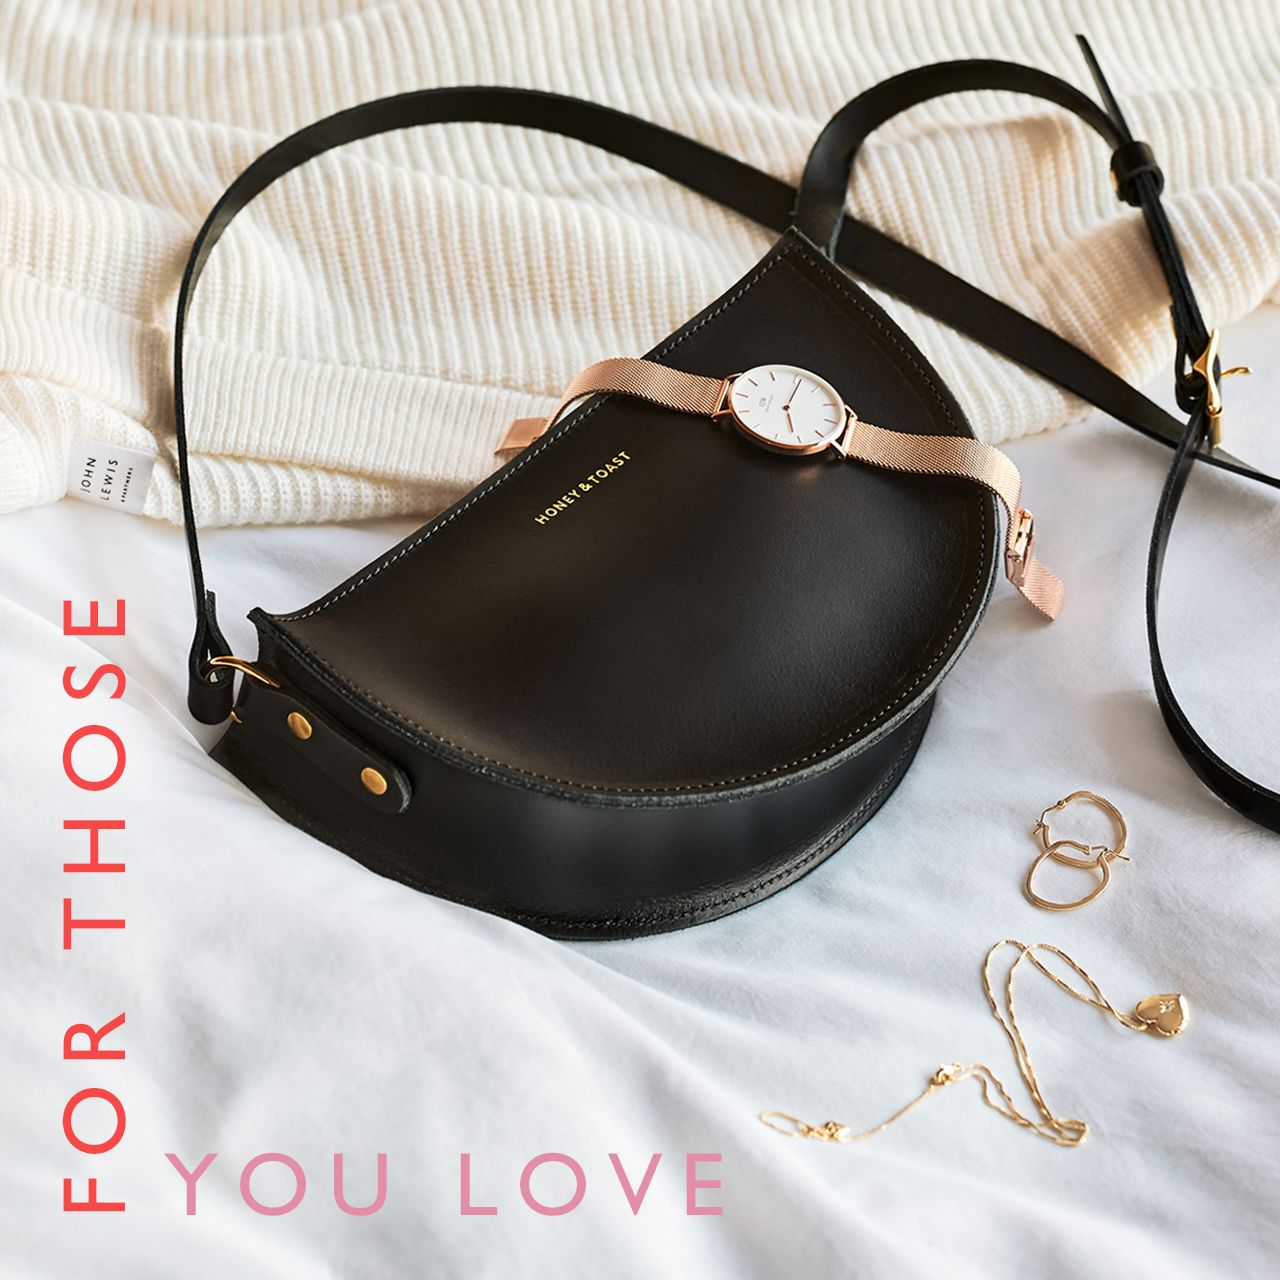 Top Valentine Gifts for Her